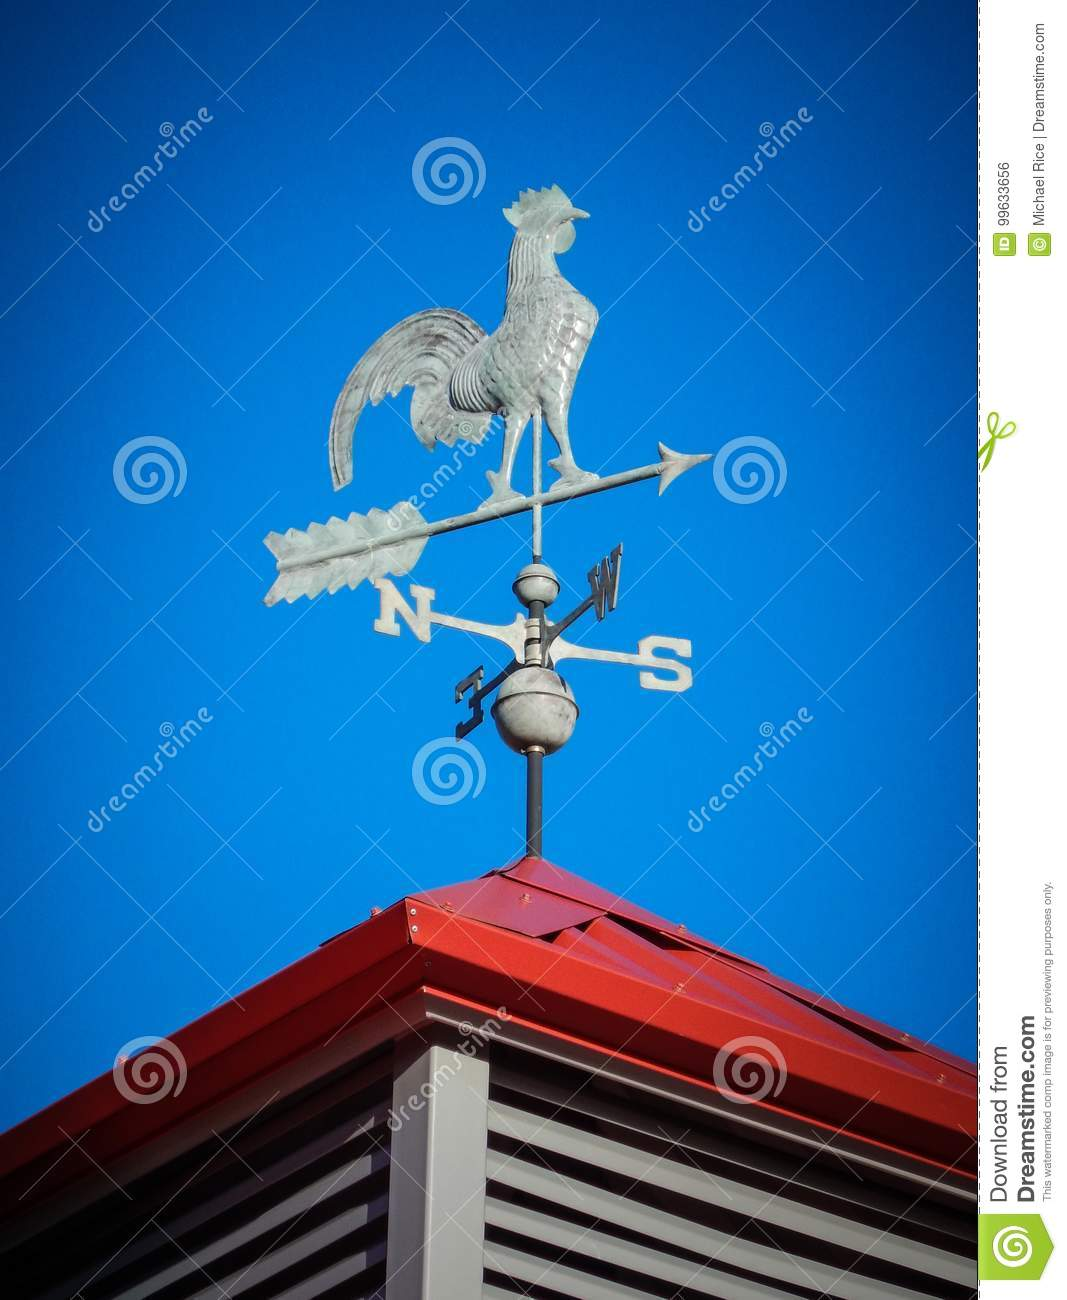 Weather vane on red roof